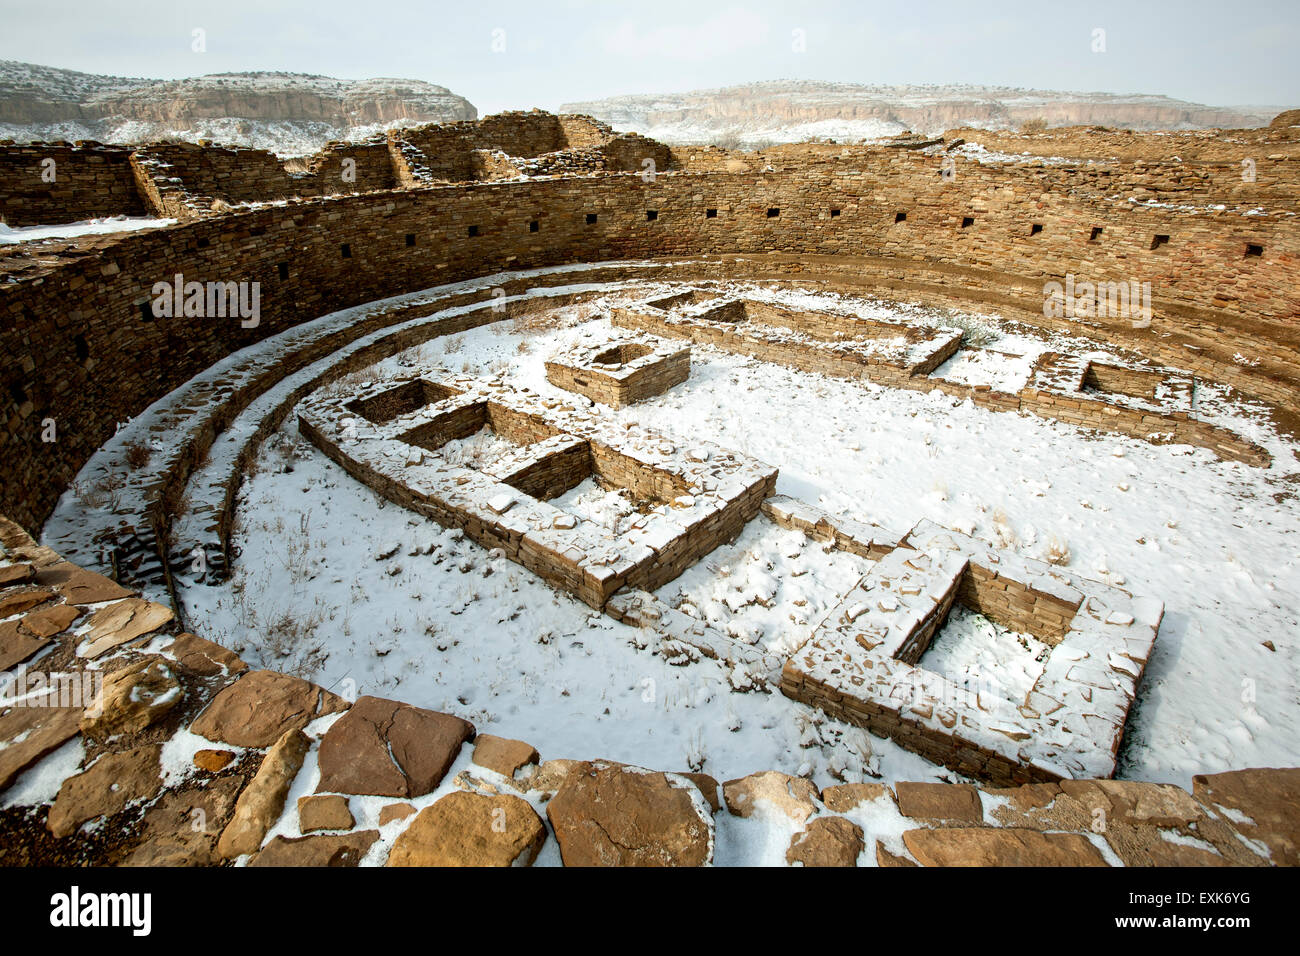 Kiva (ceremonial chamber) under snow, Pueblo Bonito great house, Chaco Culture National Historical Park, New Mexico - Stock Image